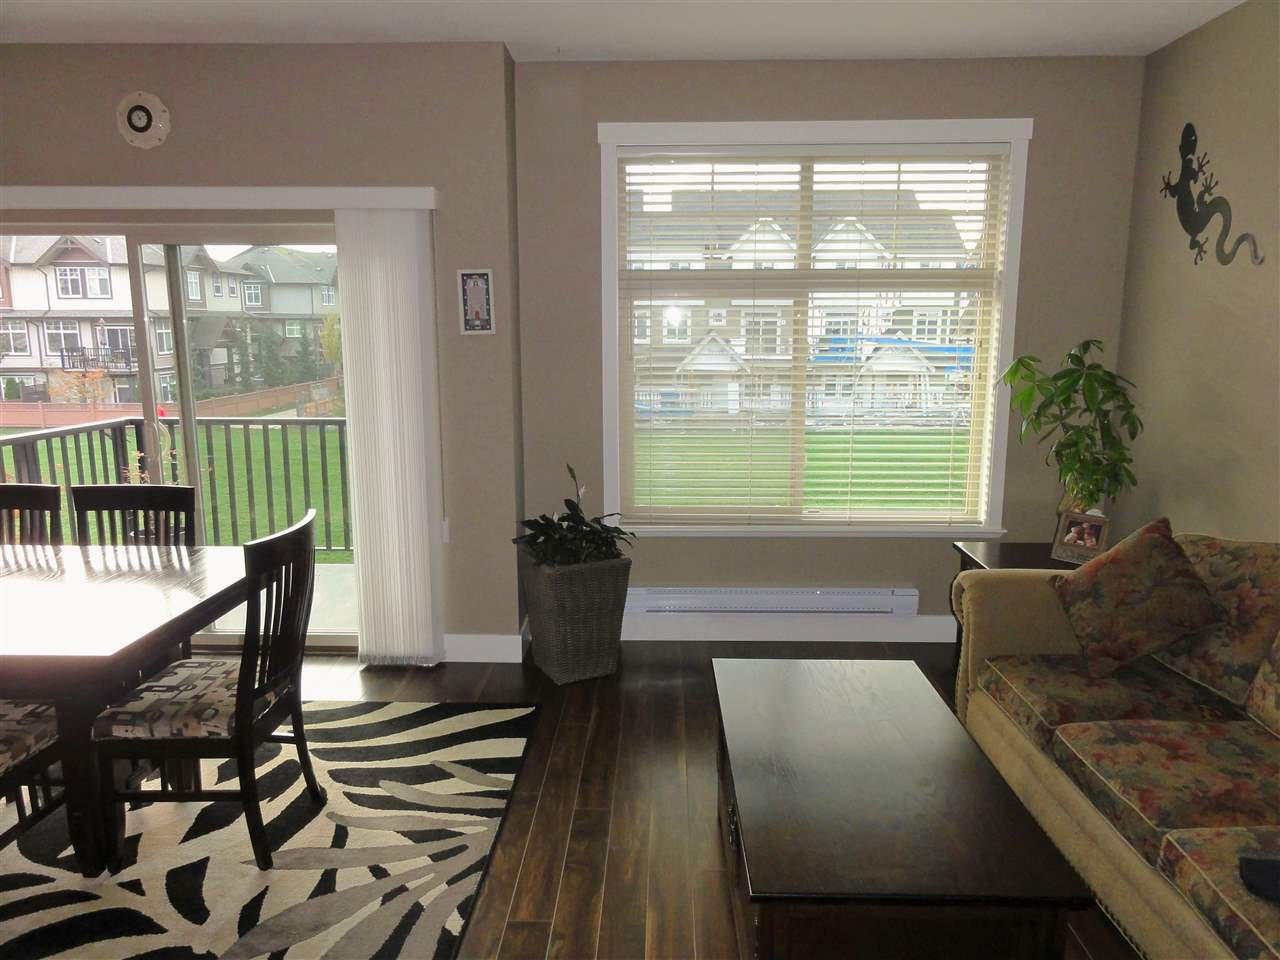 """Photo 3: Photos: 47 19525 73 Avenue in Surrey: Clayton Townhouse for sale in """"Uptown"""" (Cloverdale)  : MLS®# R2014205"""